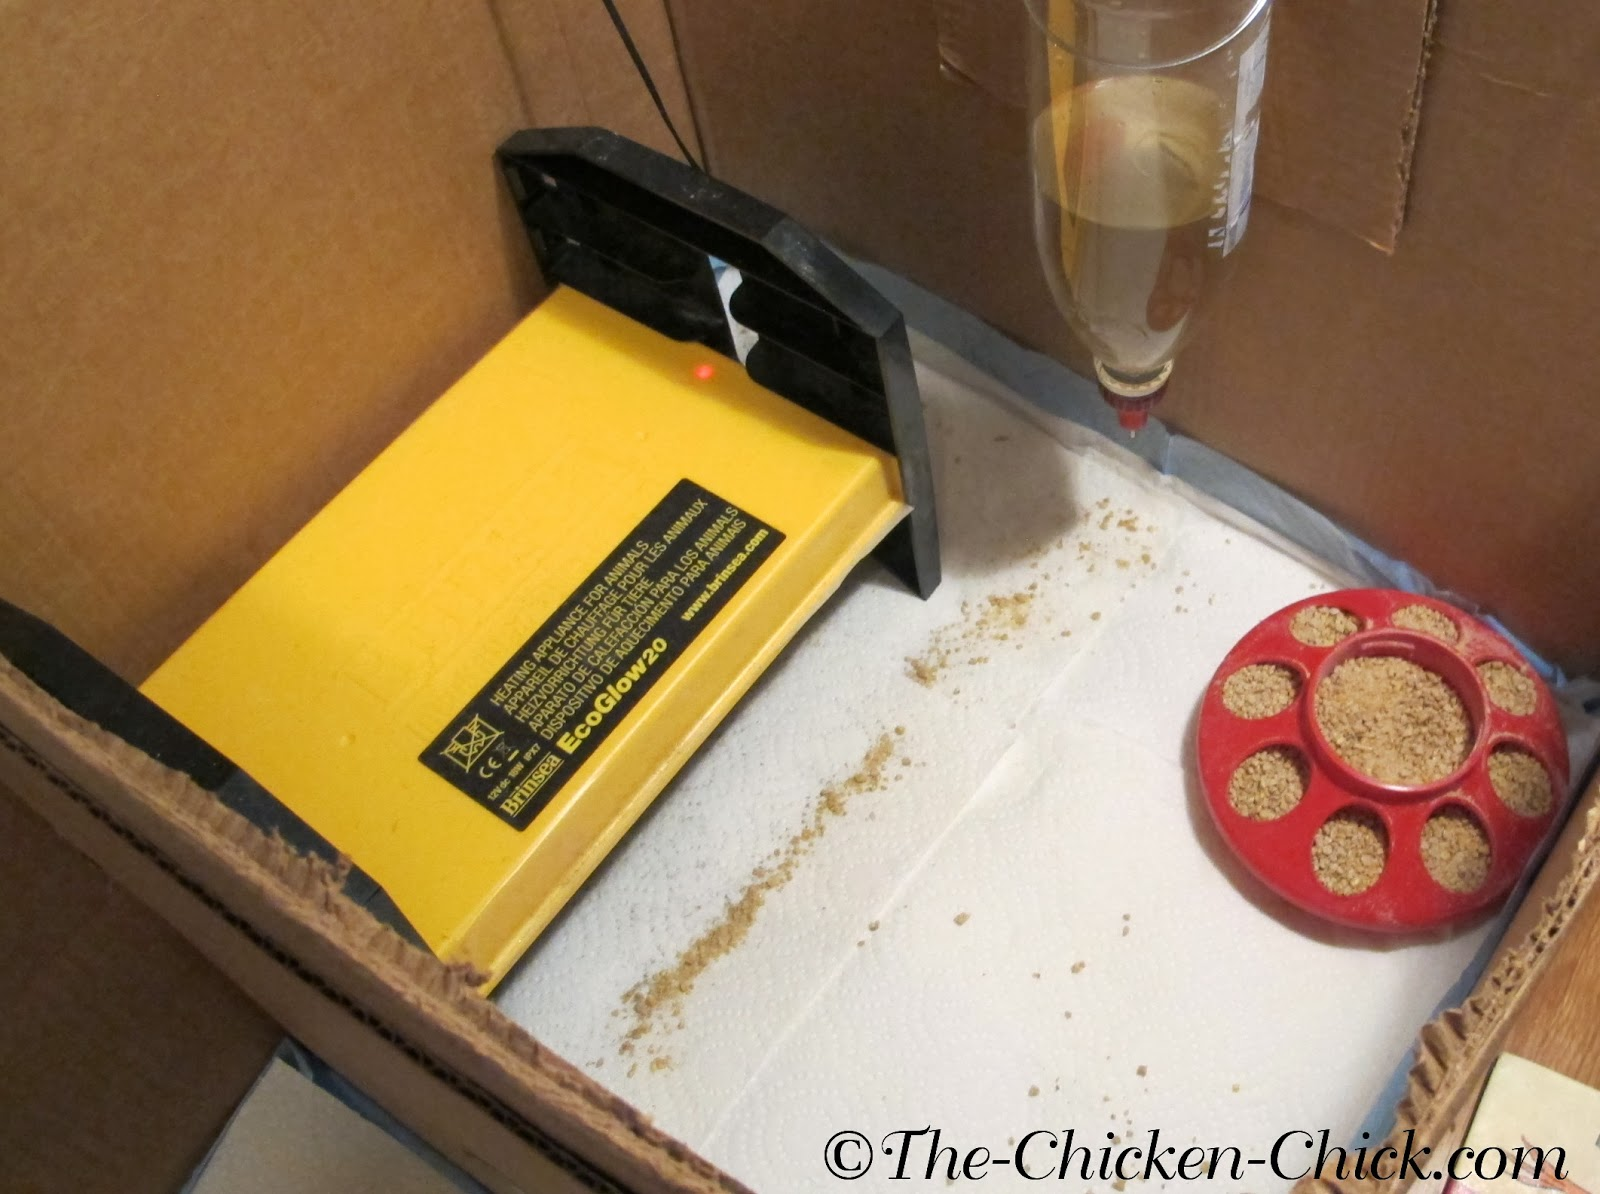 Many, creative options can work for a brooder- the set-up is limited only by the imagination. Having brooded countless batches of baby chicks, my strong preference is the cardboard box.